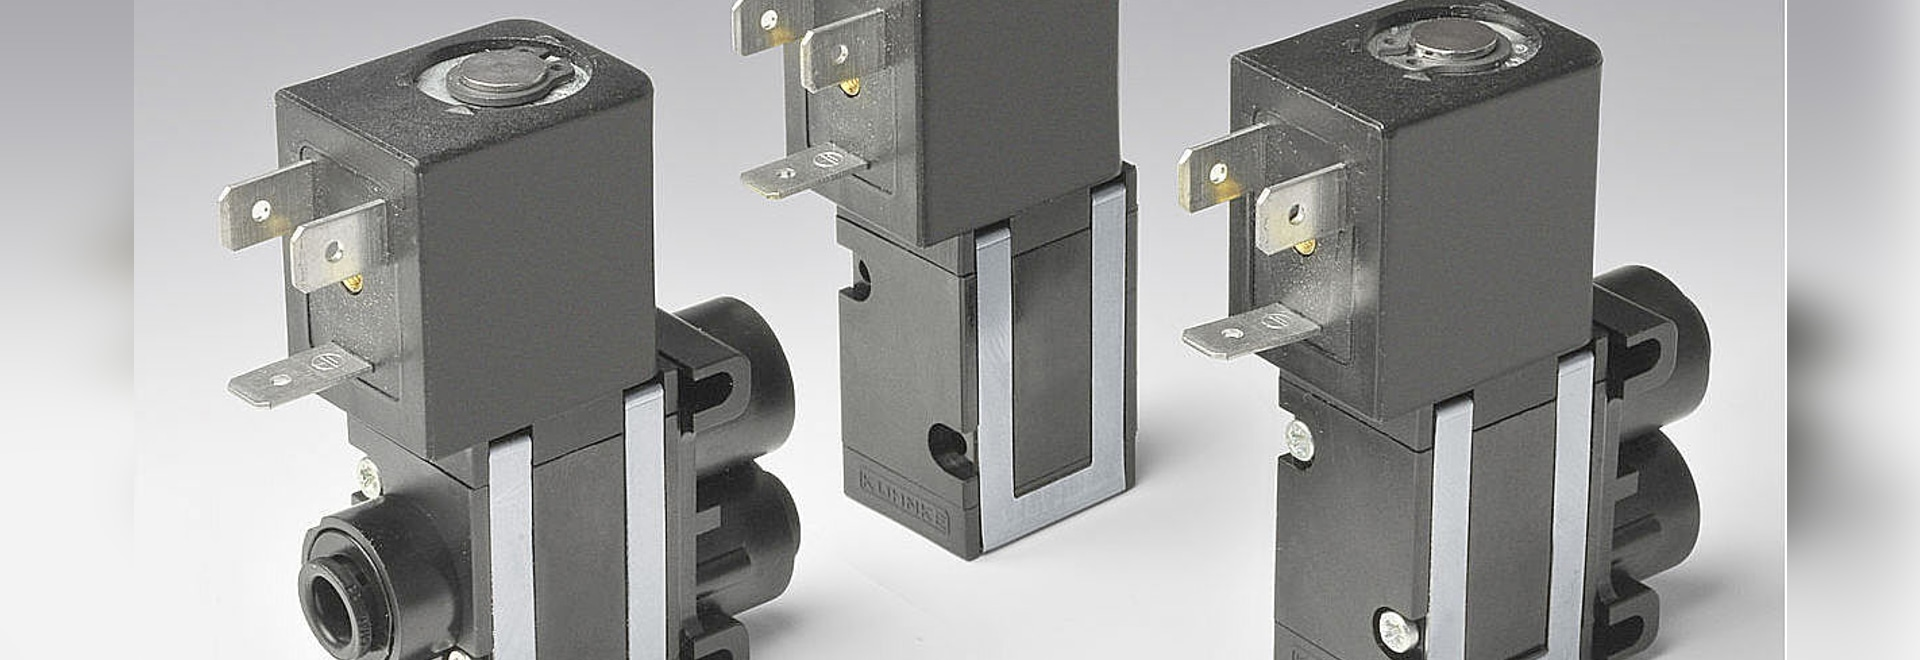 Directly controlled fluid isolation solenoid valve with NW 3.5